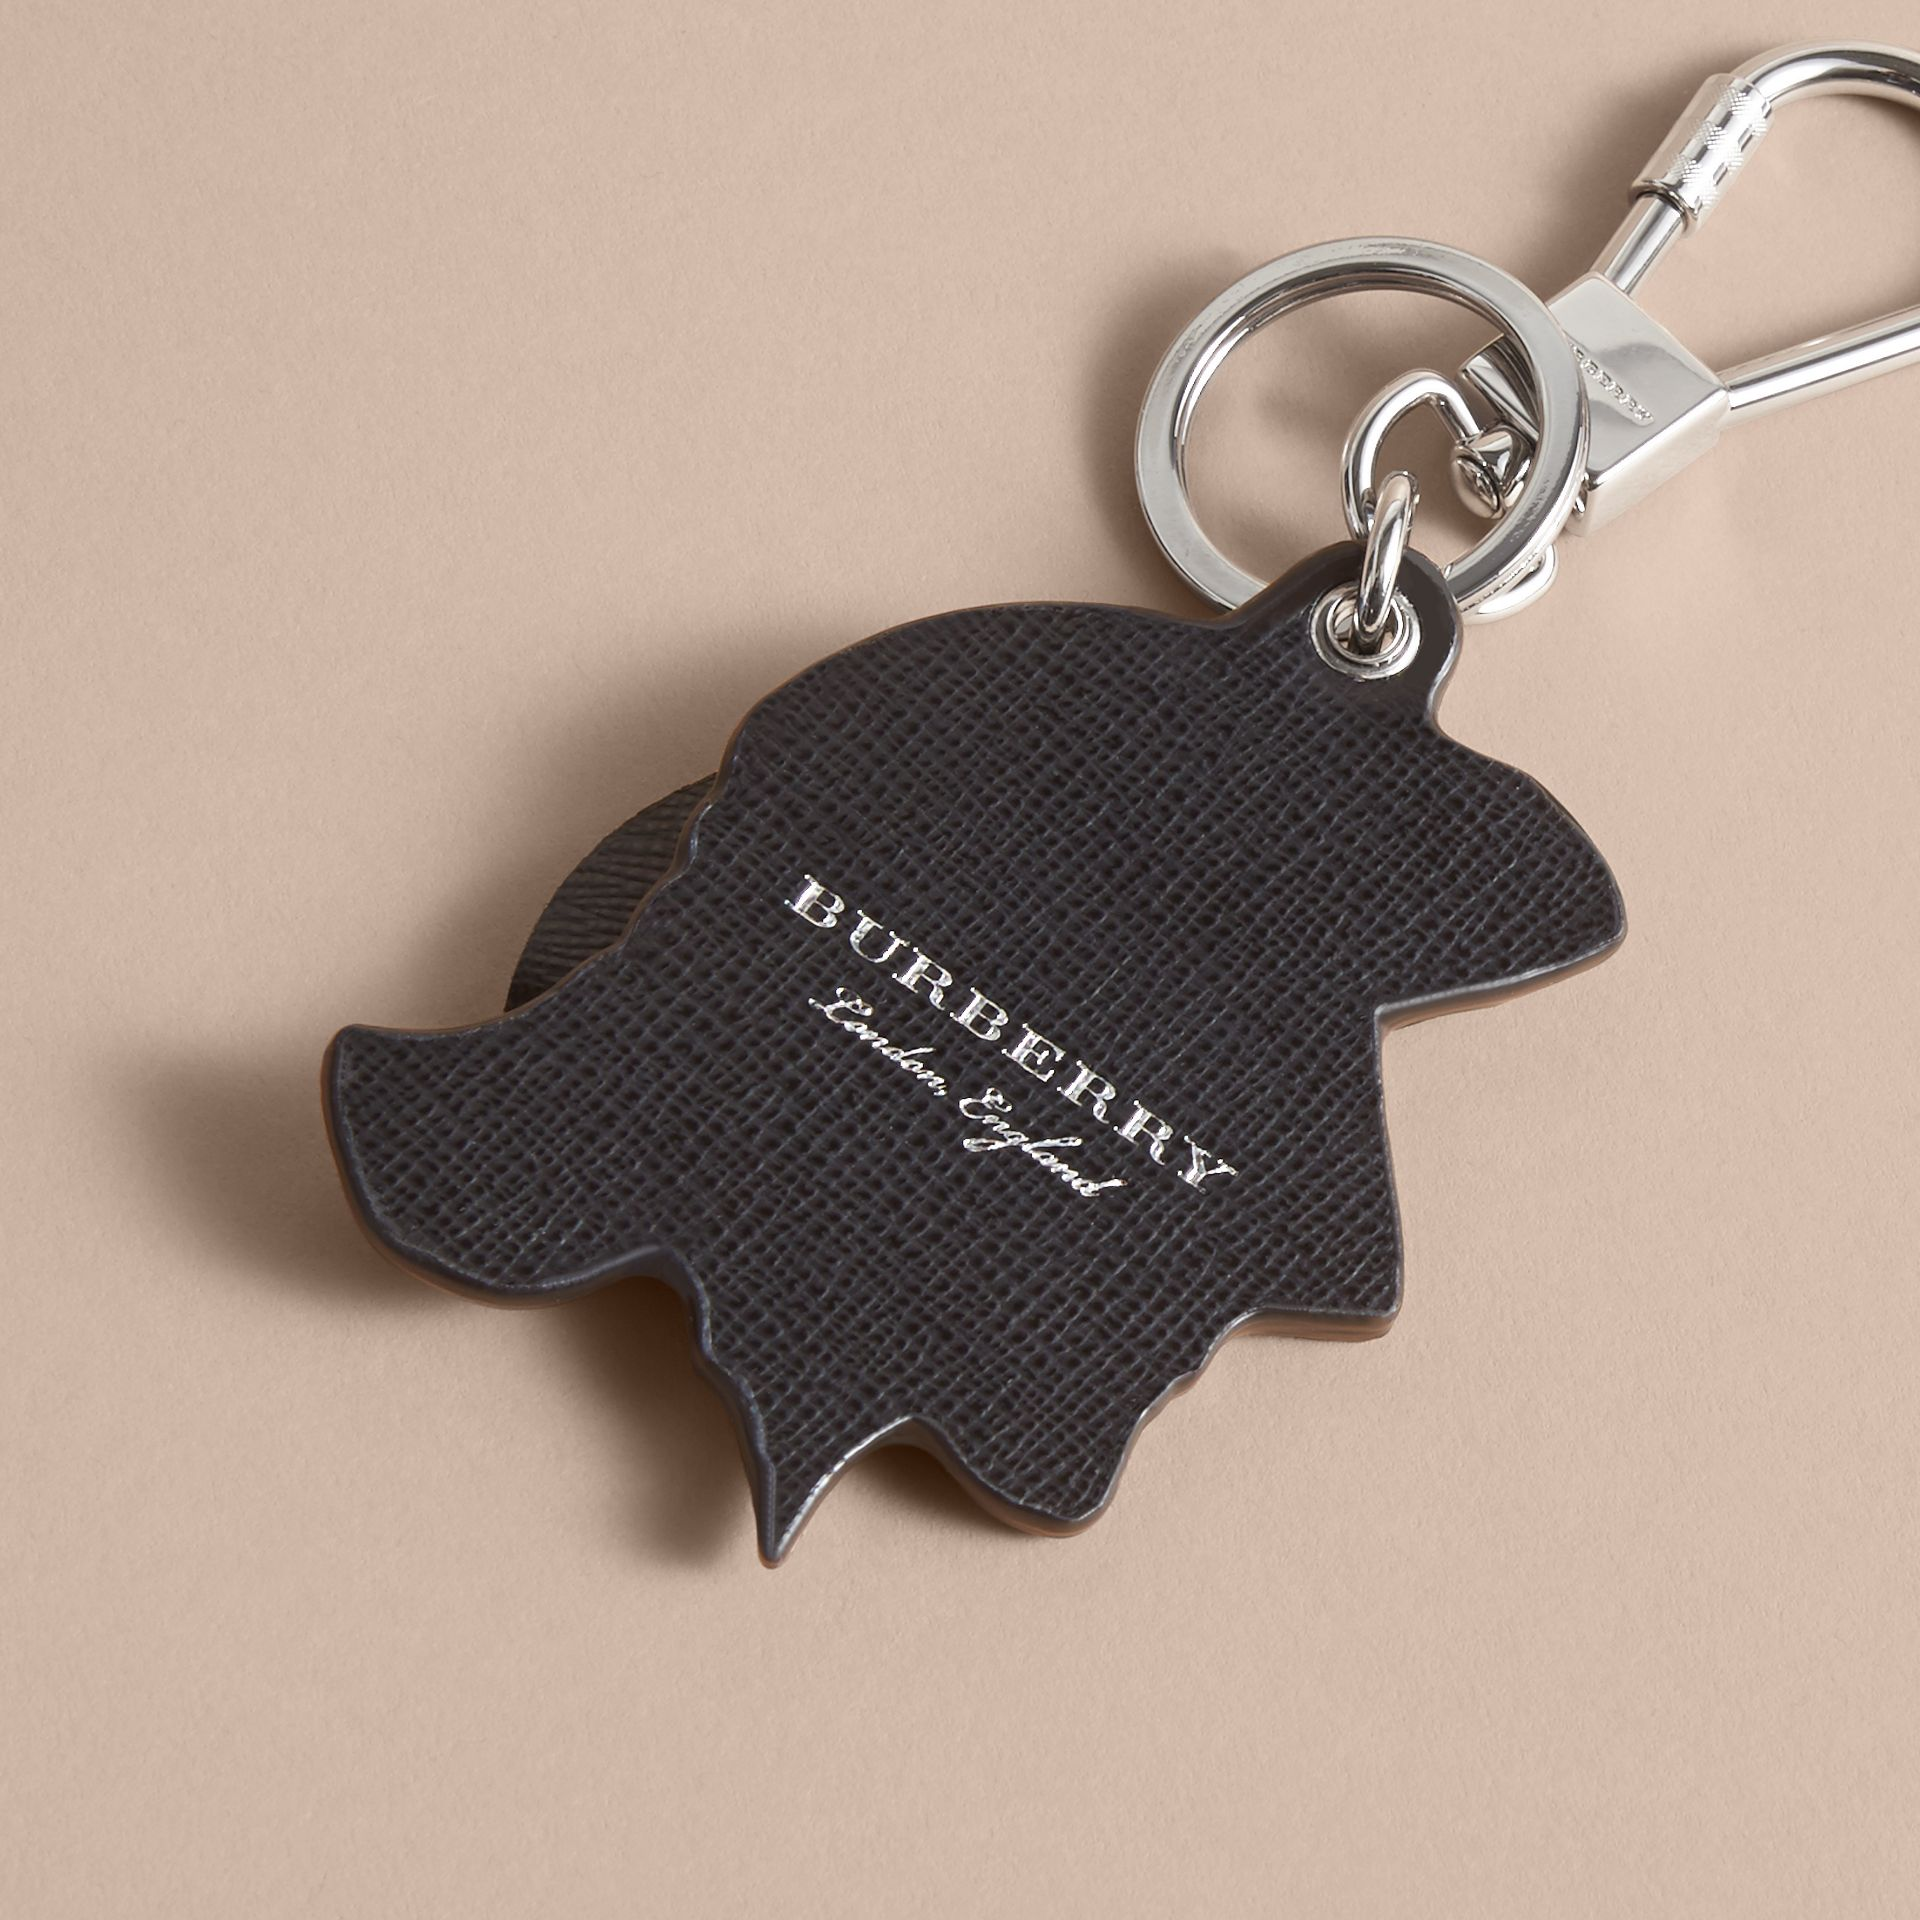 Pallas Helmet Motif Leather Key Ring in Black/white - Men | Burberry - gallery image 4